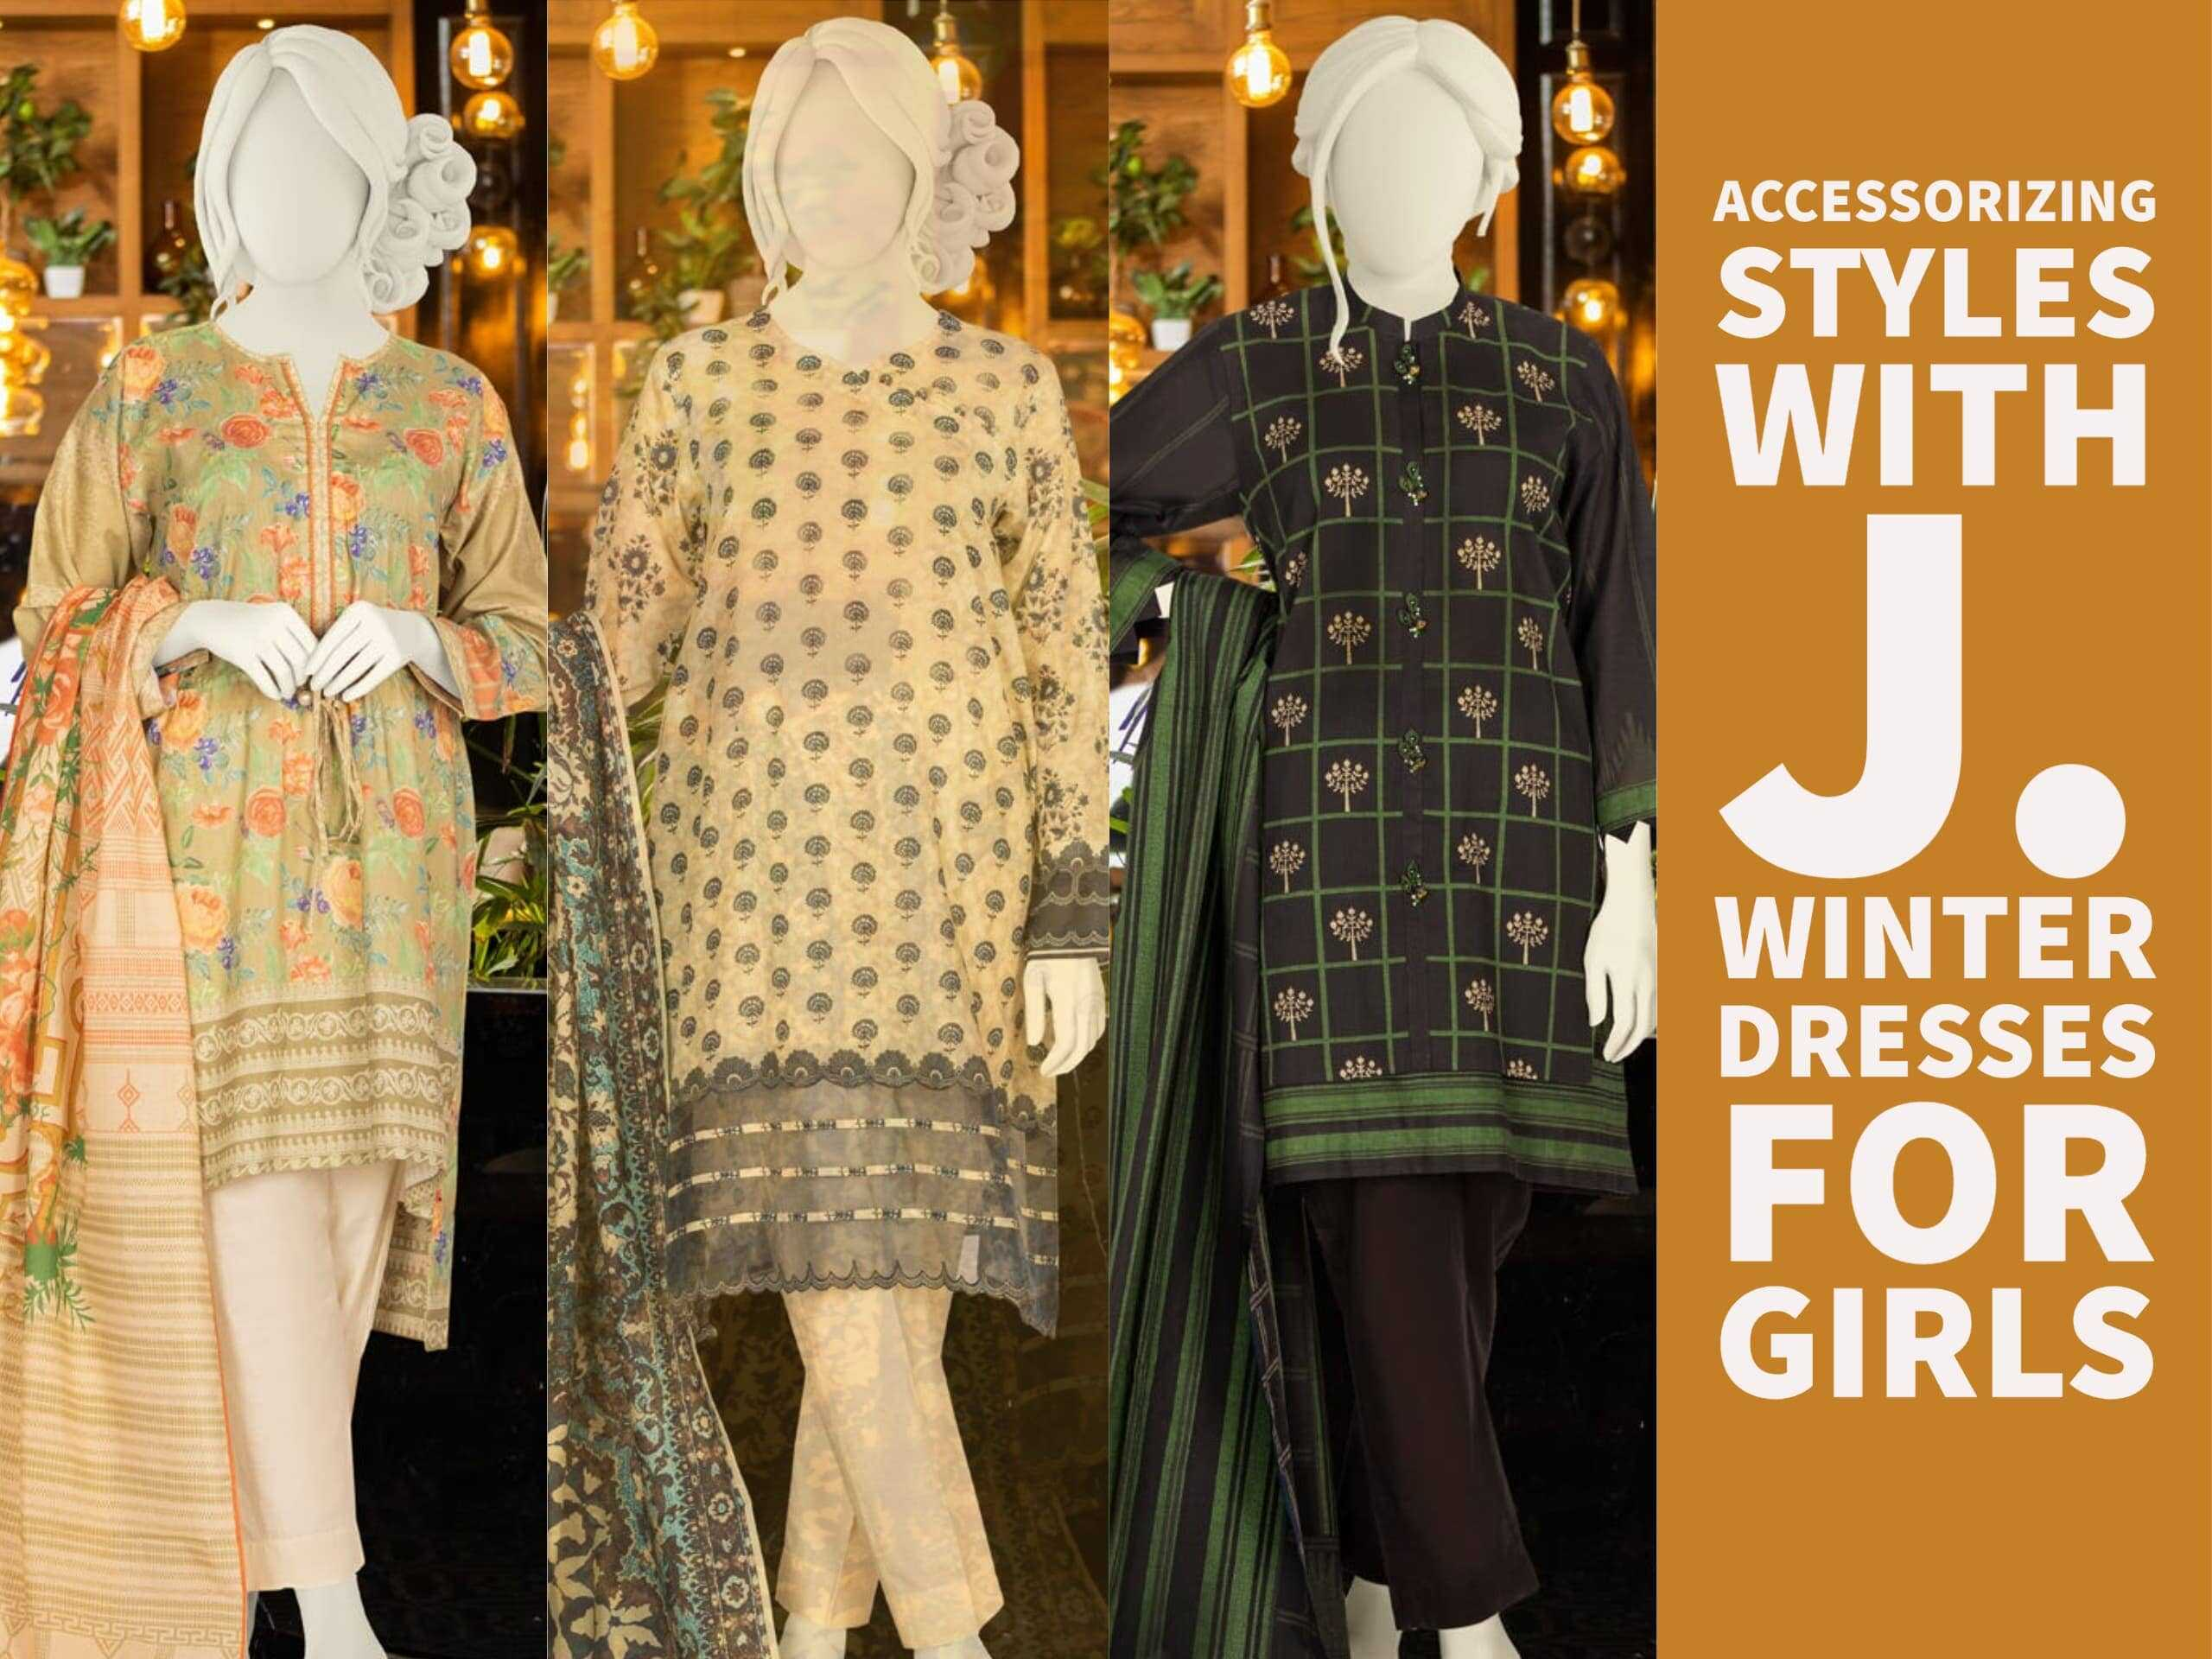 Accessorizing Styles With J. Winter Dresses For Girls